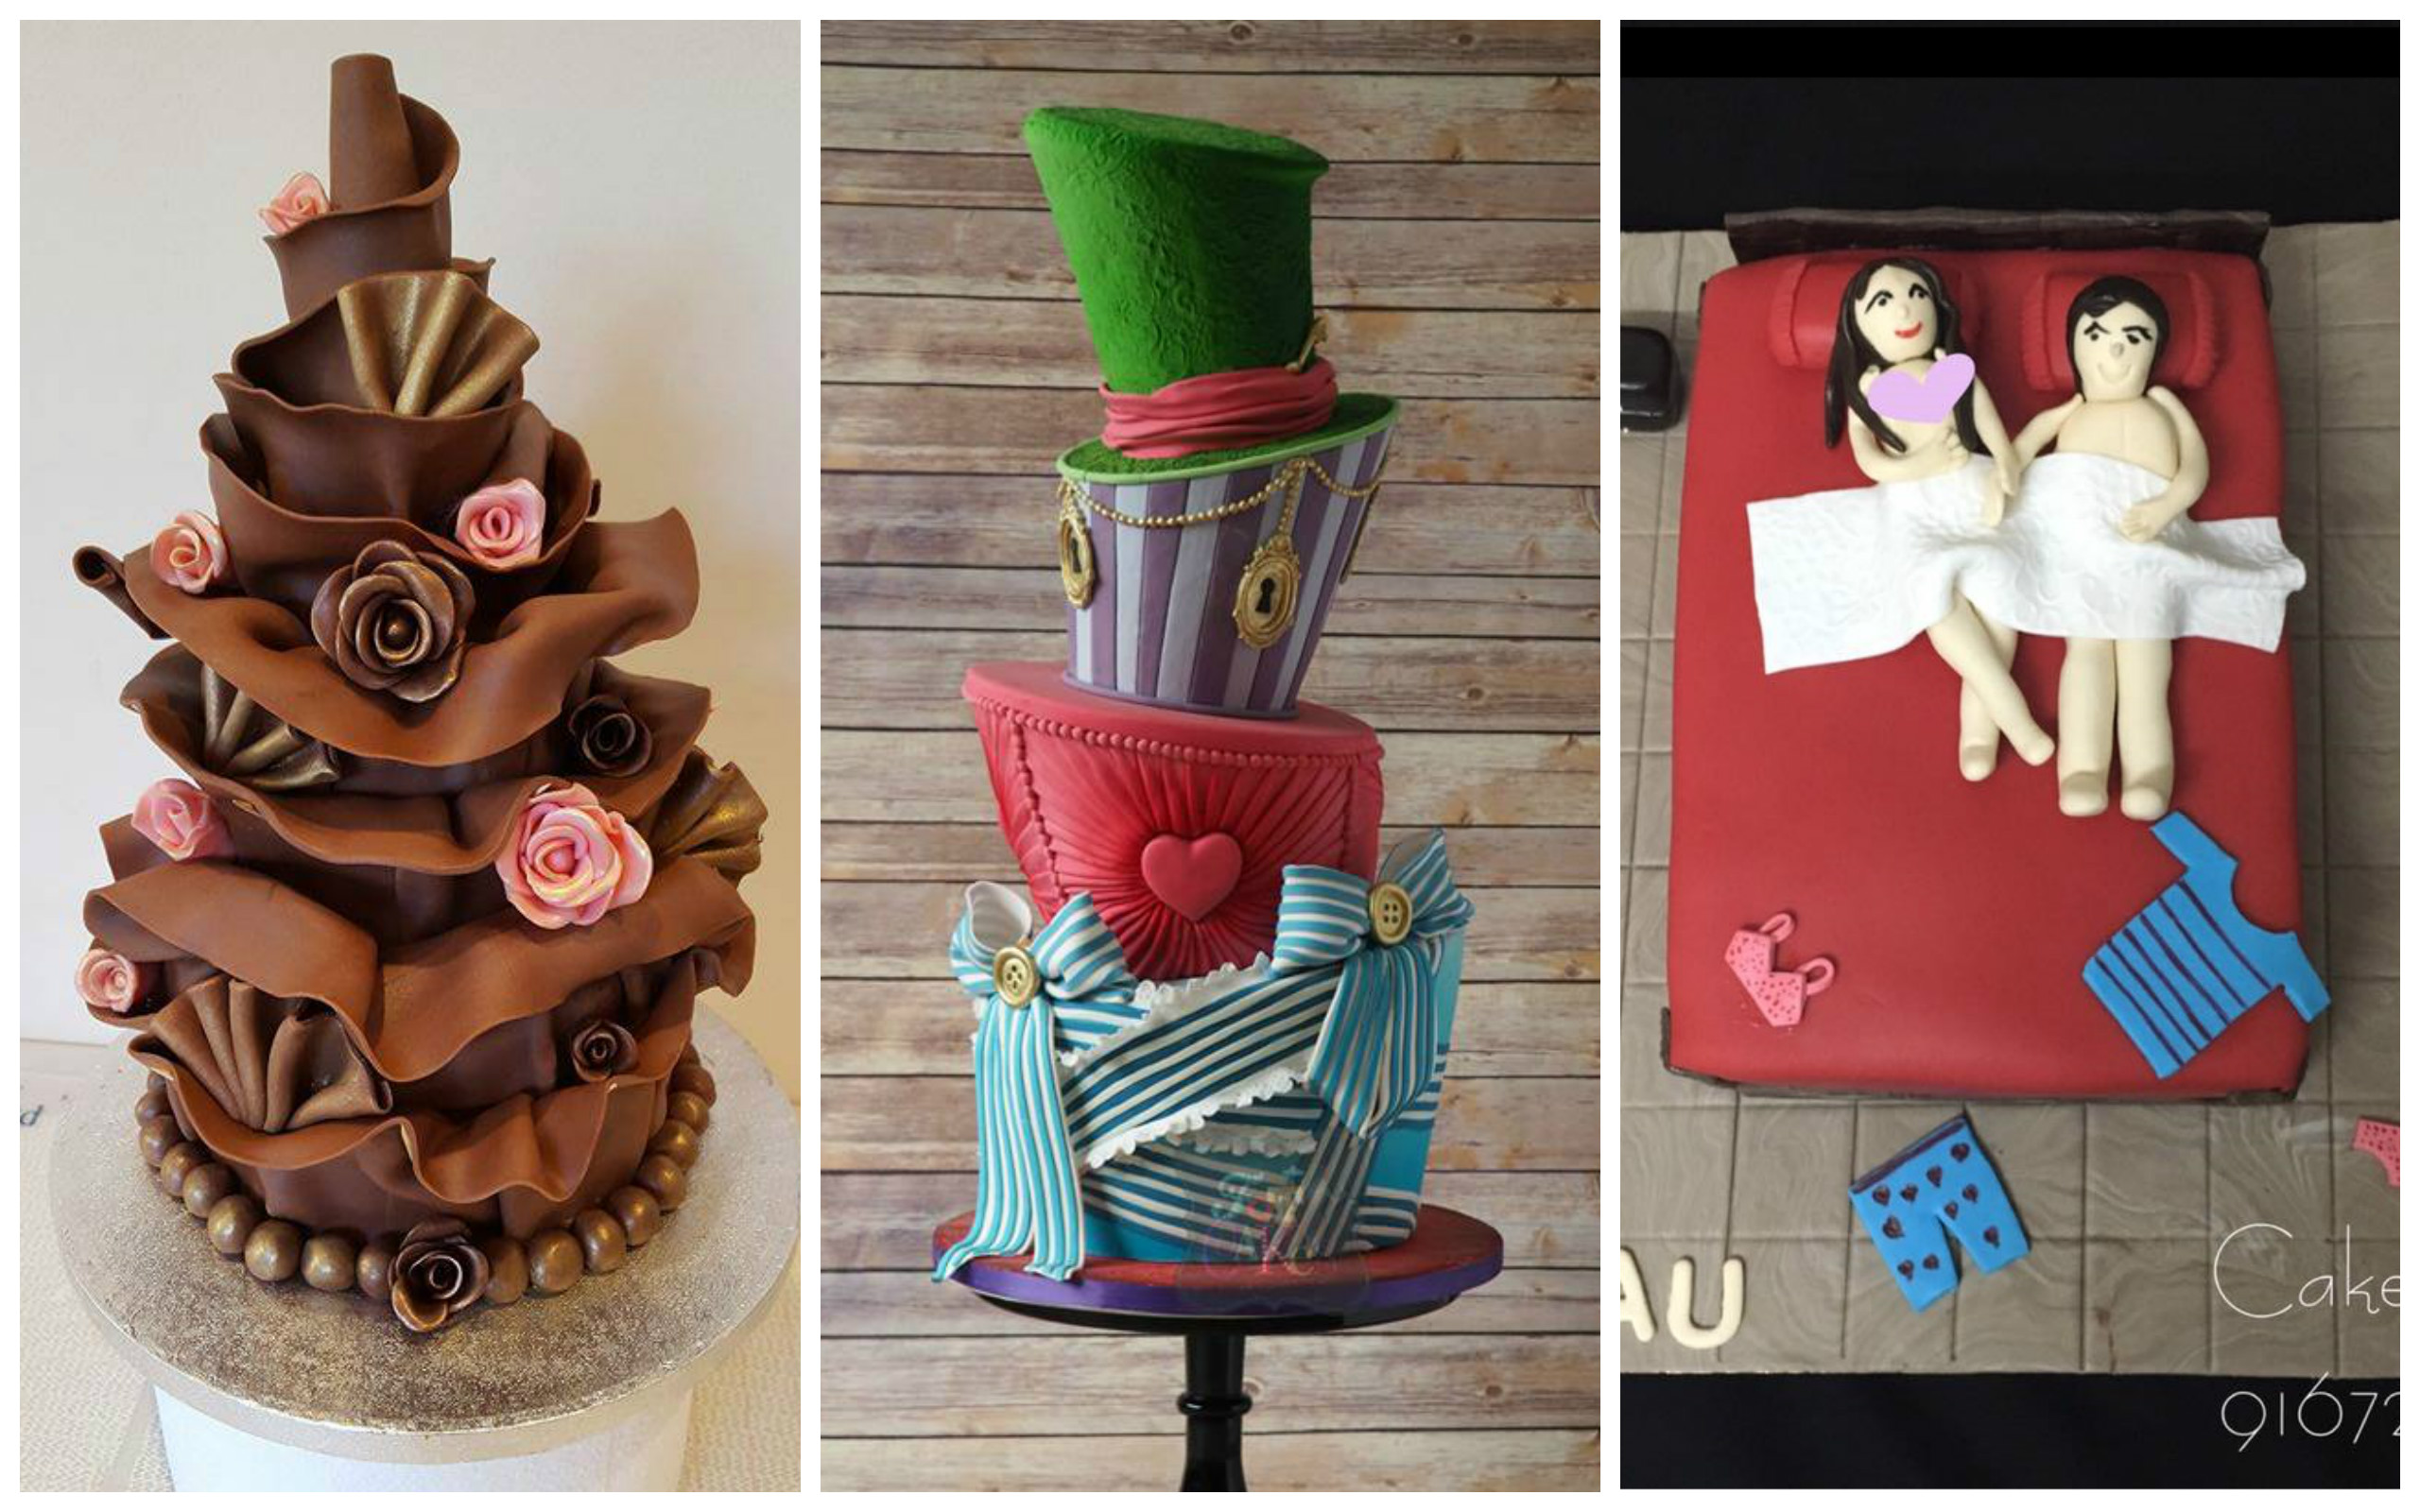 Cake Design Competition : Competition: Certified Cake Master of the World